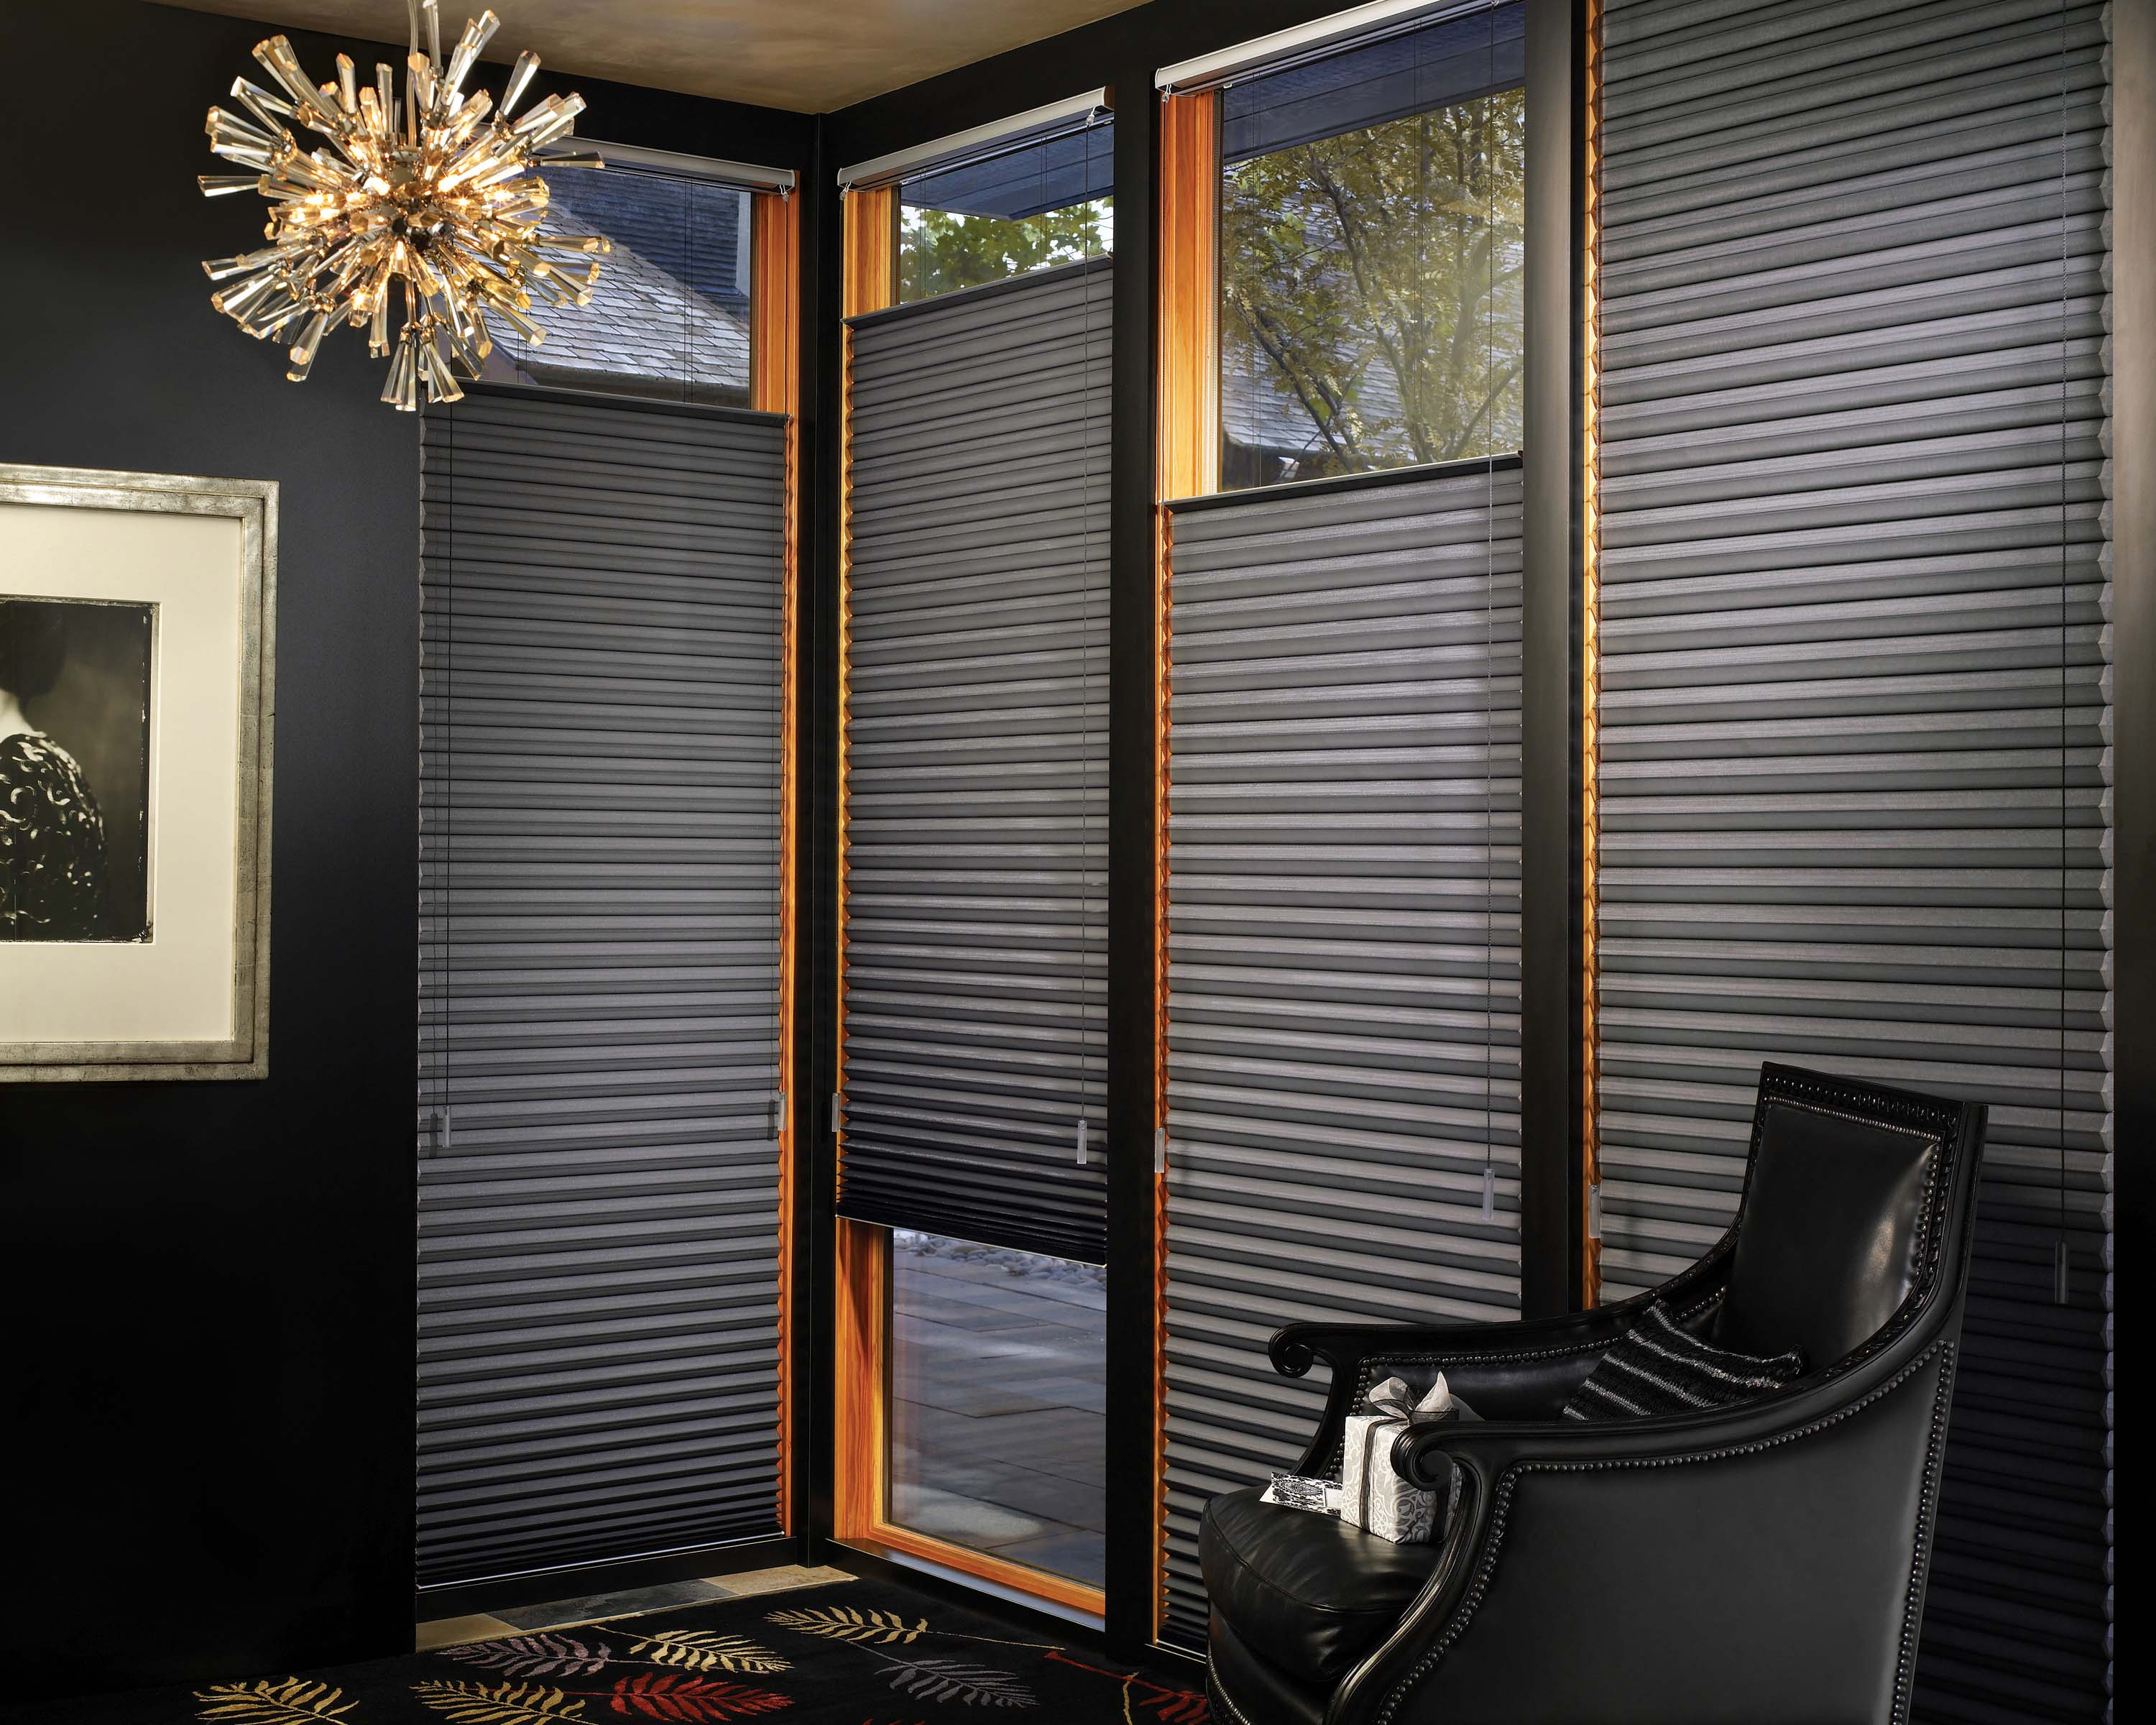 hunter douglas duette architella honeycomb shades custom window treatments by jacoby company. Black Bedroom Furniture Sets. Home Design Ideas